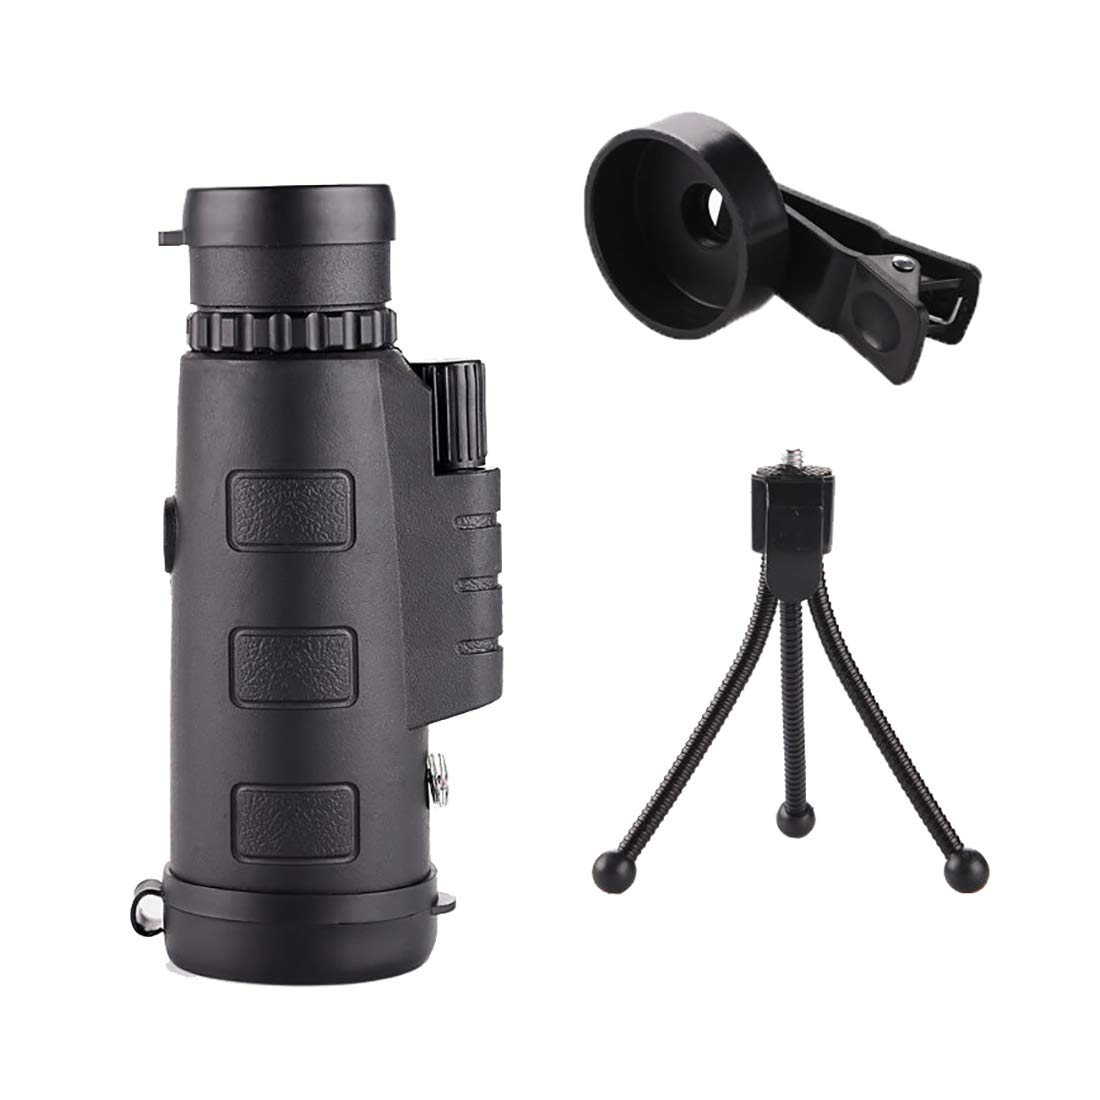 ZGQA-GQA 10X22 Compact Monocular Telescope Pocket Mono Spotting Scope with for Birdwatching Hunting/Camping/Hiking/Golf/Concert/Surveillance for Adult (Size : EX004) by ZGQA-GQA